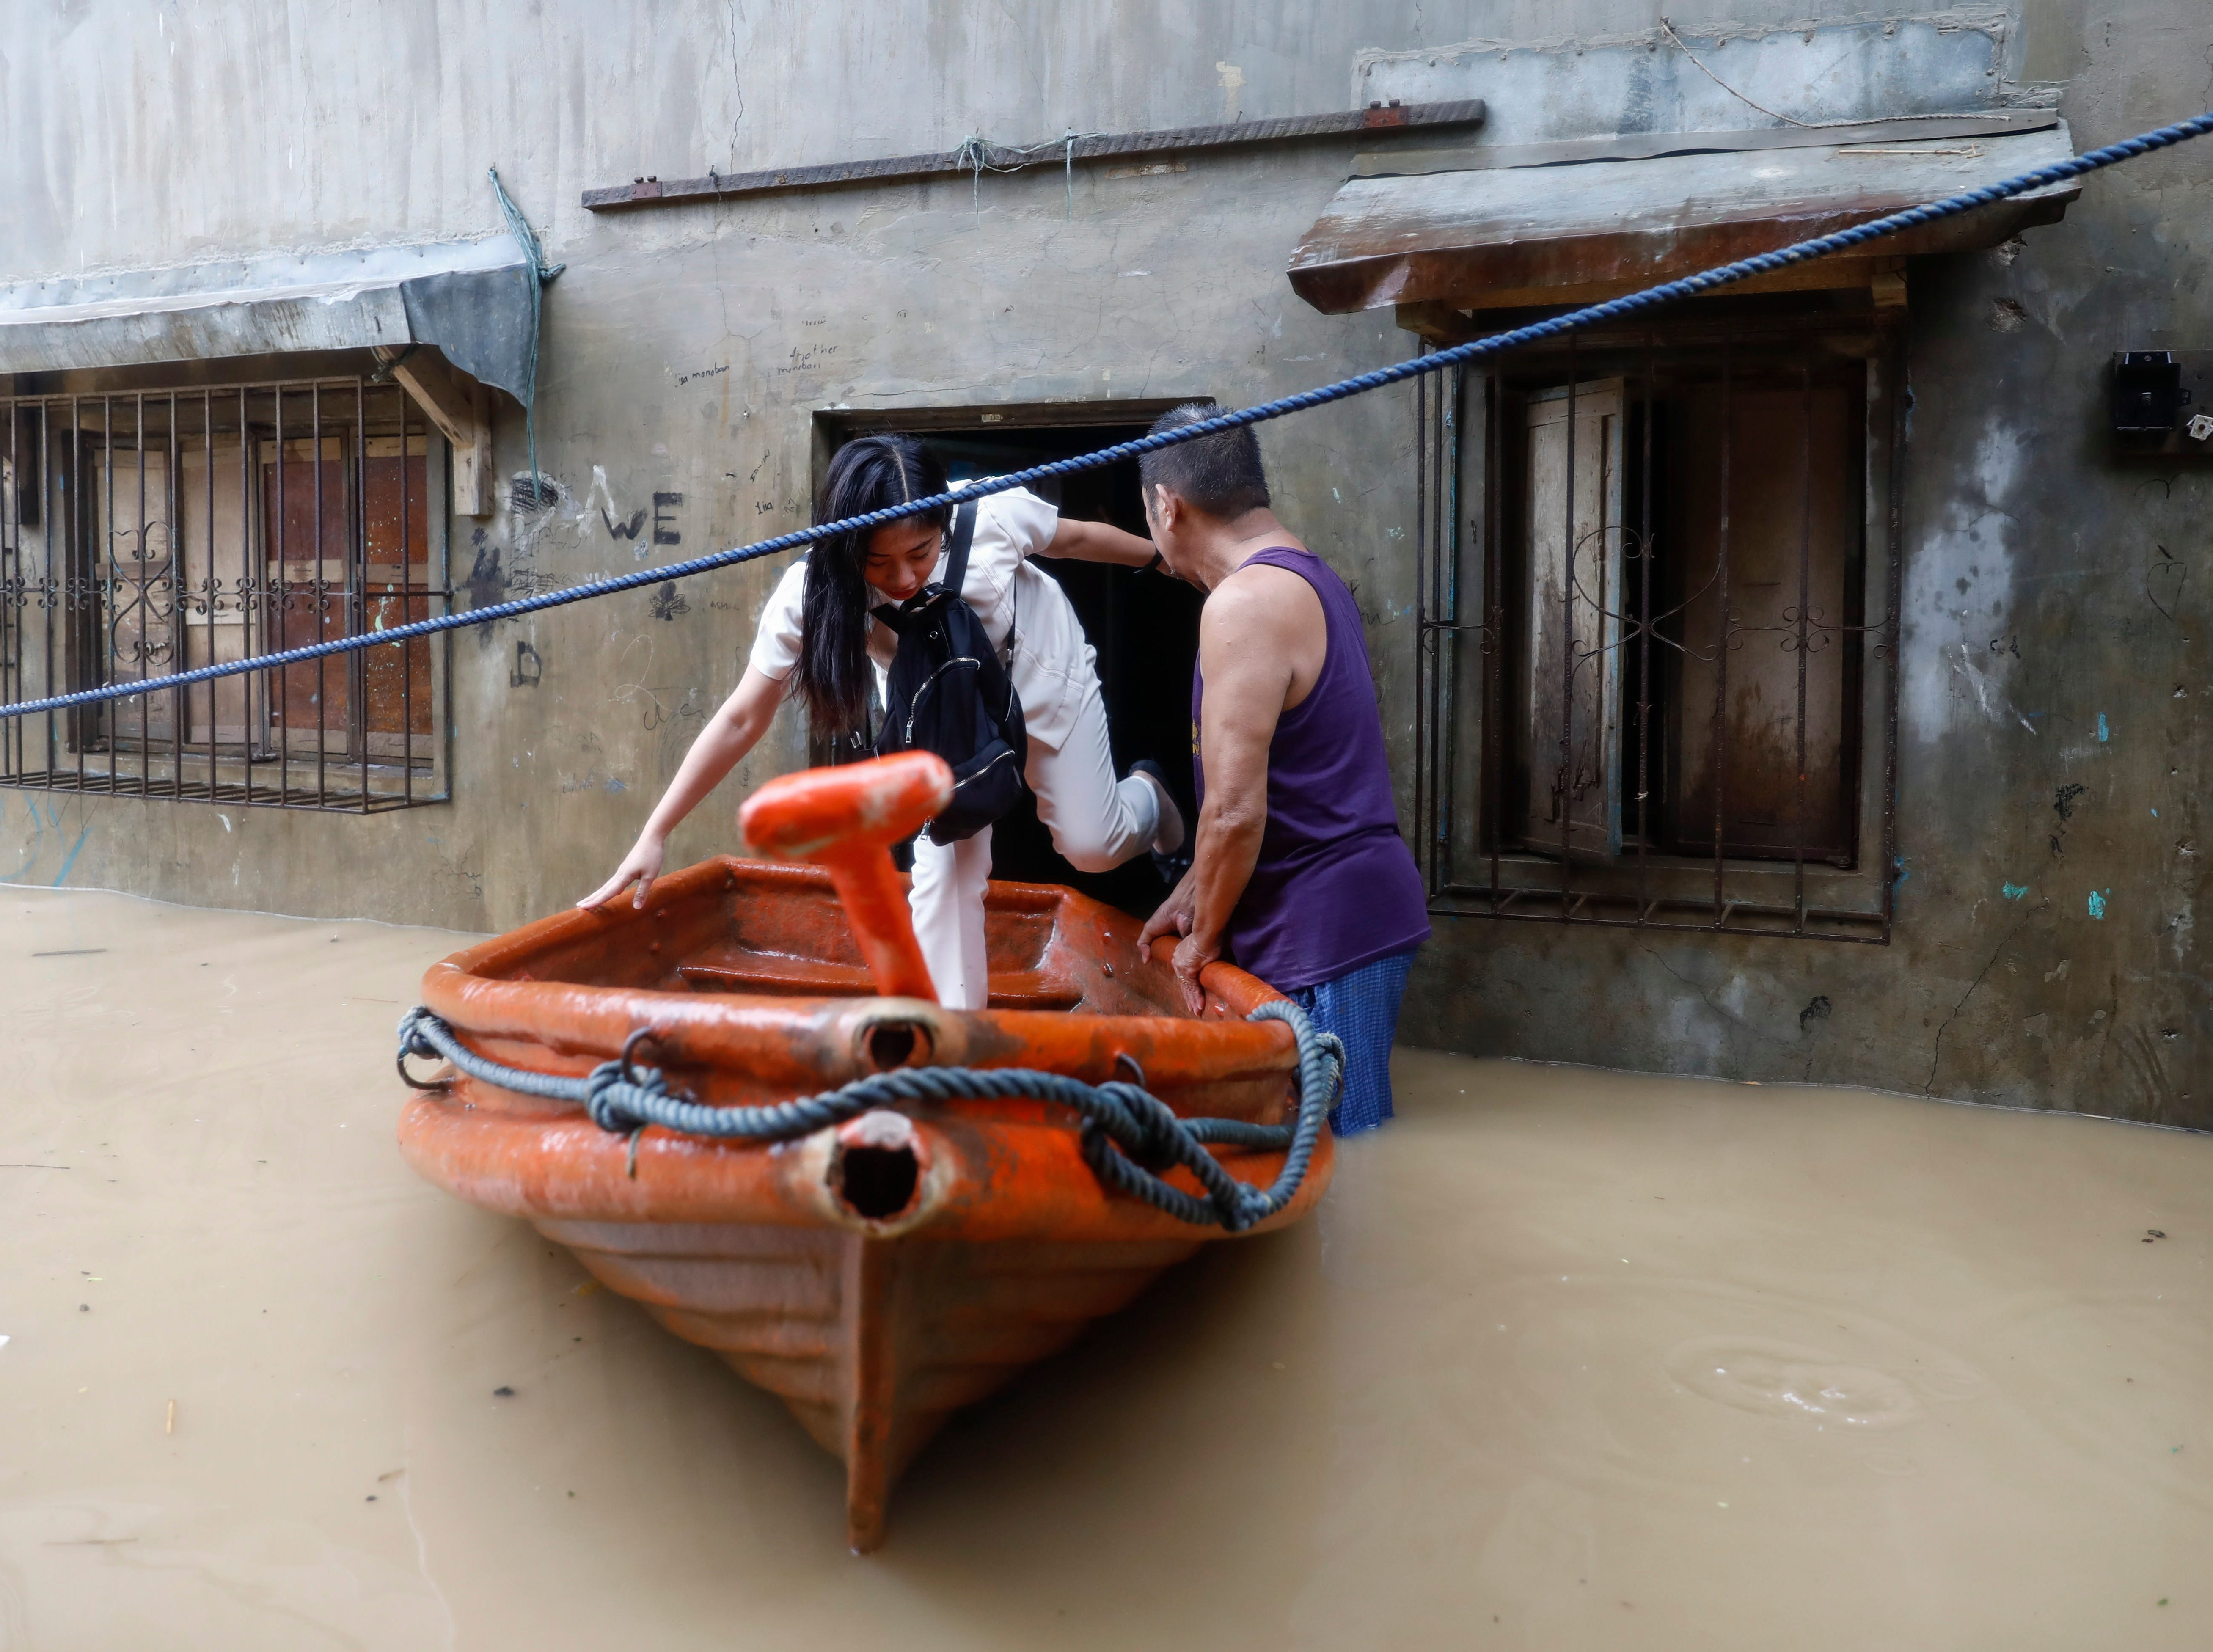 A resident tries to avoid floodwaters by boarding a raft in San Mateo town of Rizal Province, east of Manila, Philippines 15 September 2018. Mangkhut, the most powerful typhoon to strike the Philippines in the last five years, made landfall in the northeastern town of Baggao with maximum sustained winds of 128 mph and gusts of up to 177 mph.